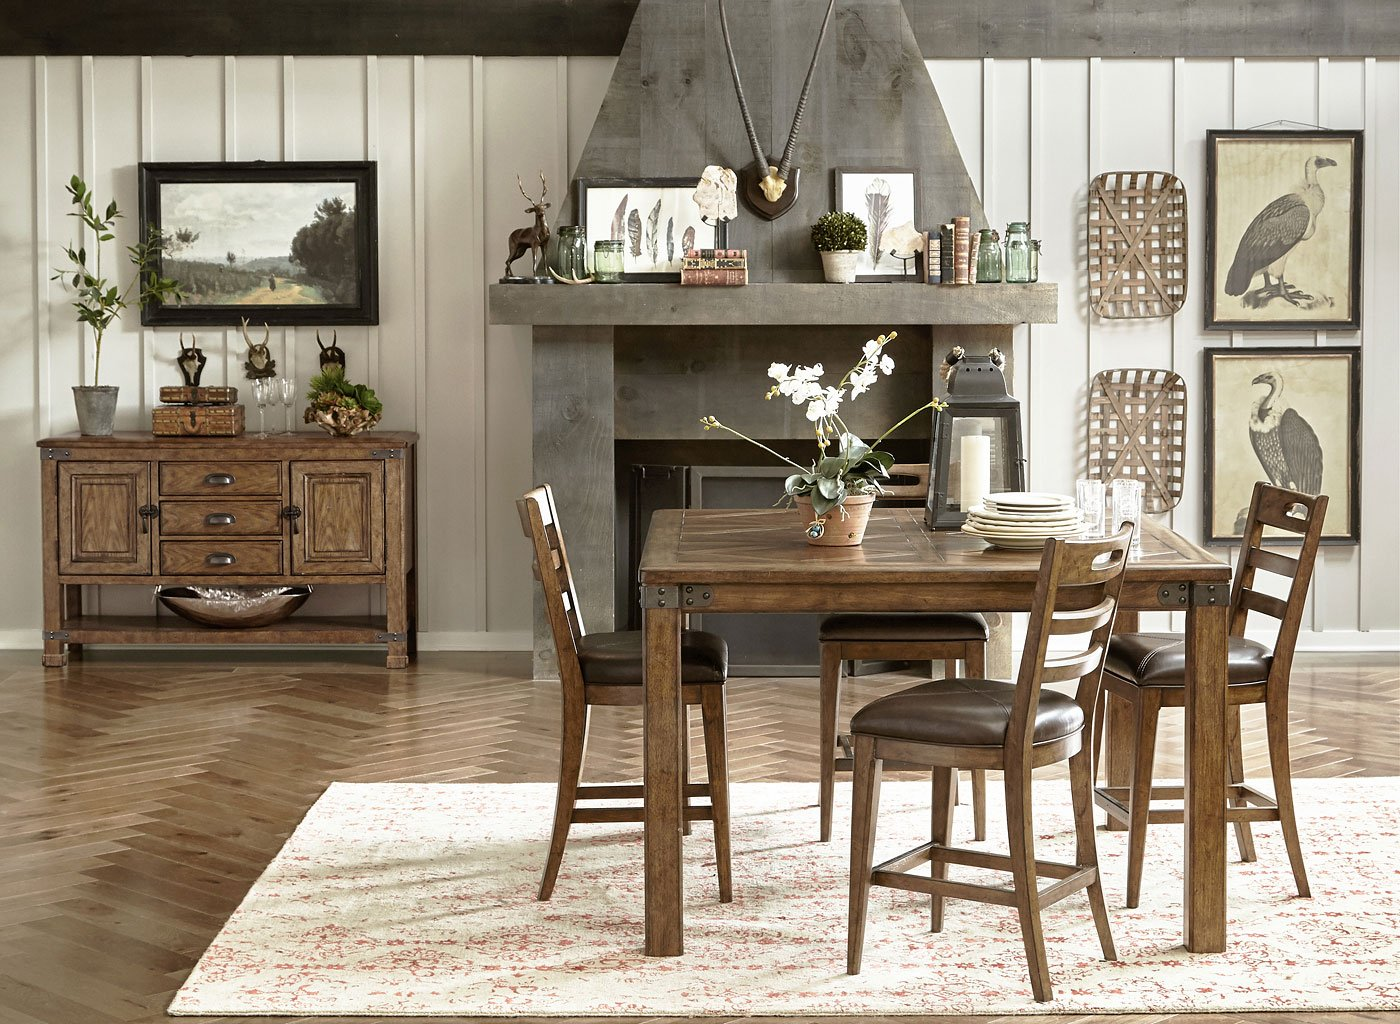 Heartland Falls Counter Height Dining Set w/ Ladder Chairs